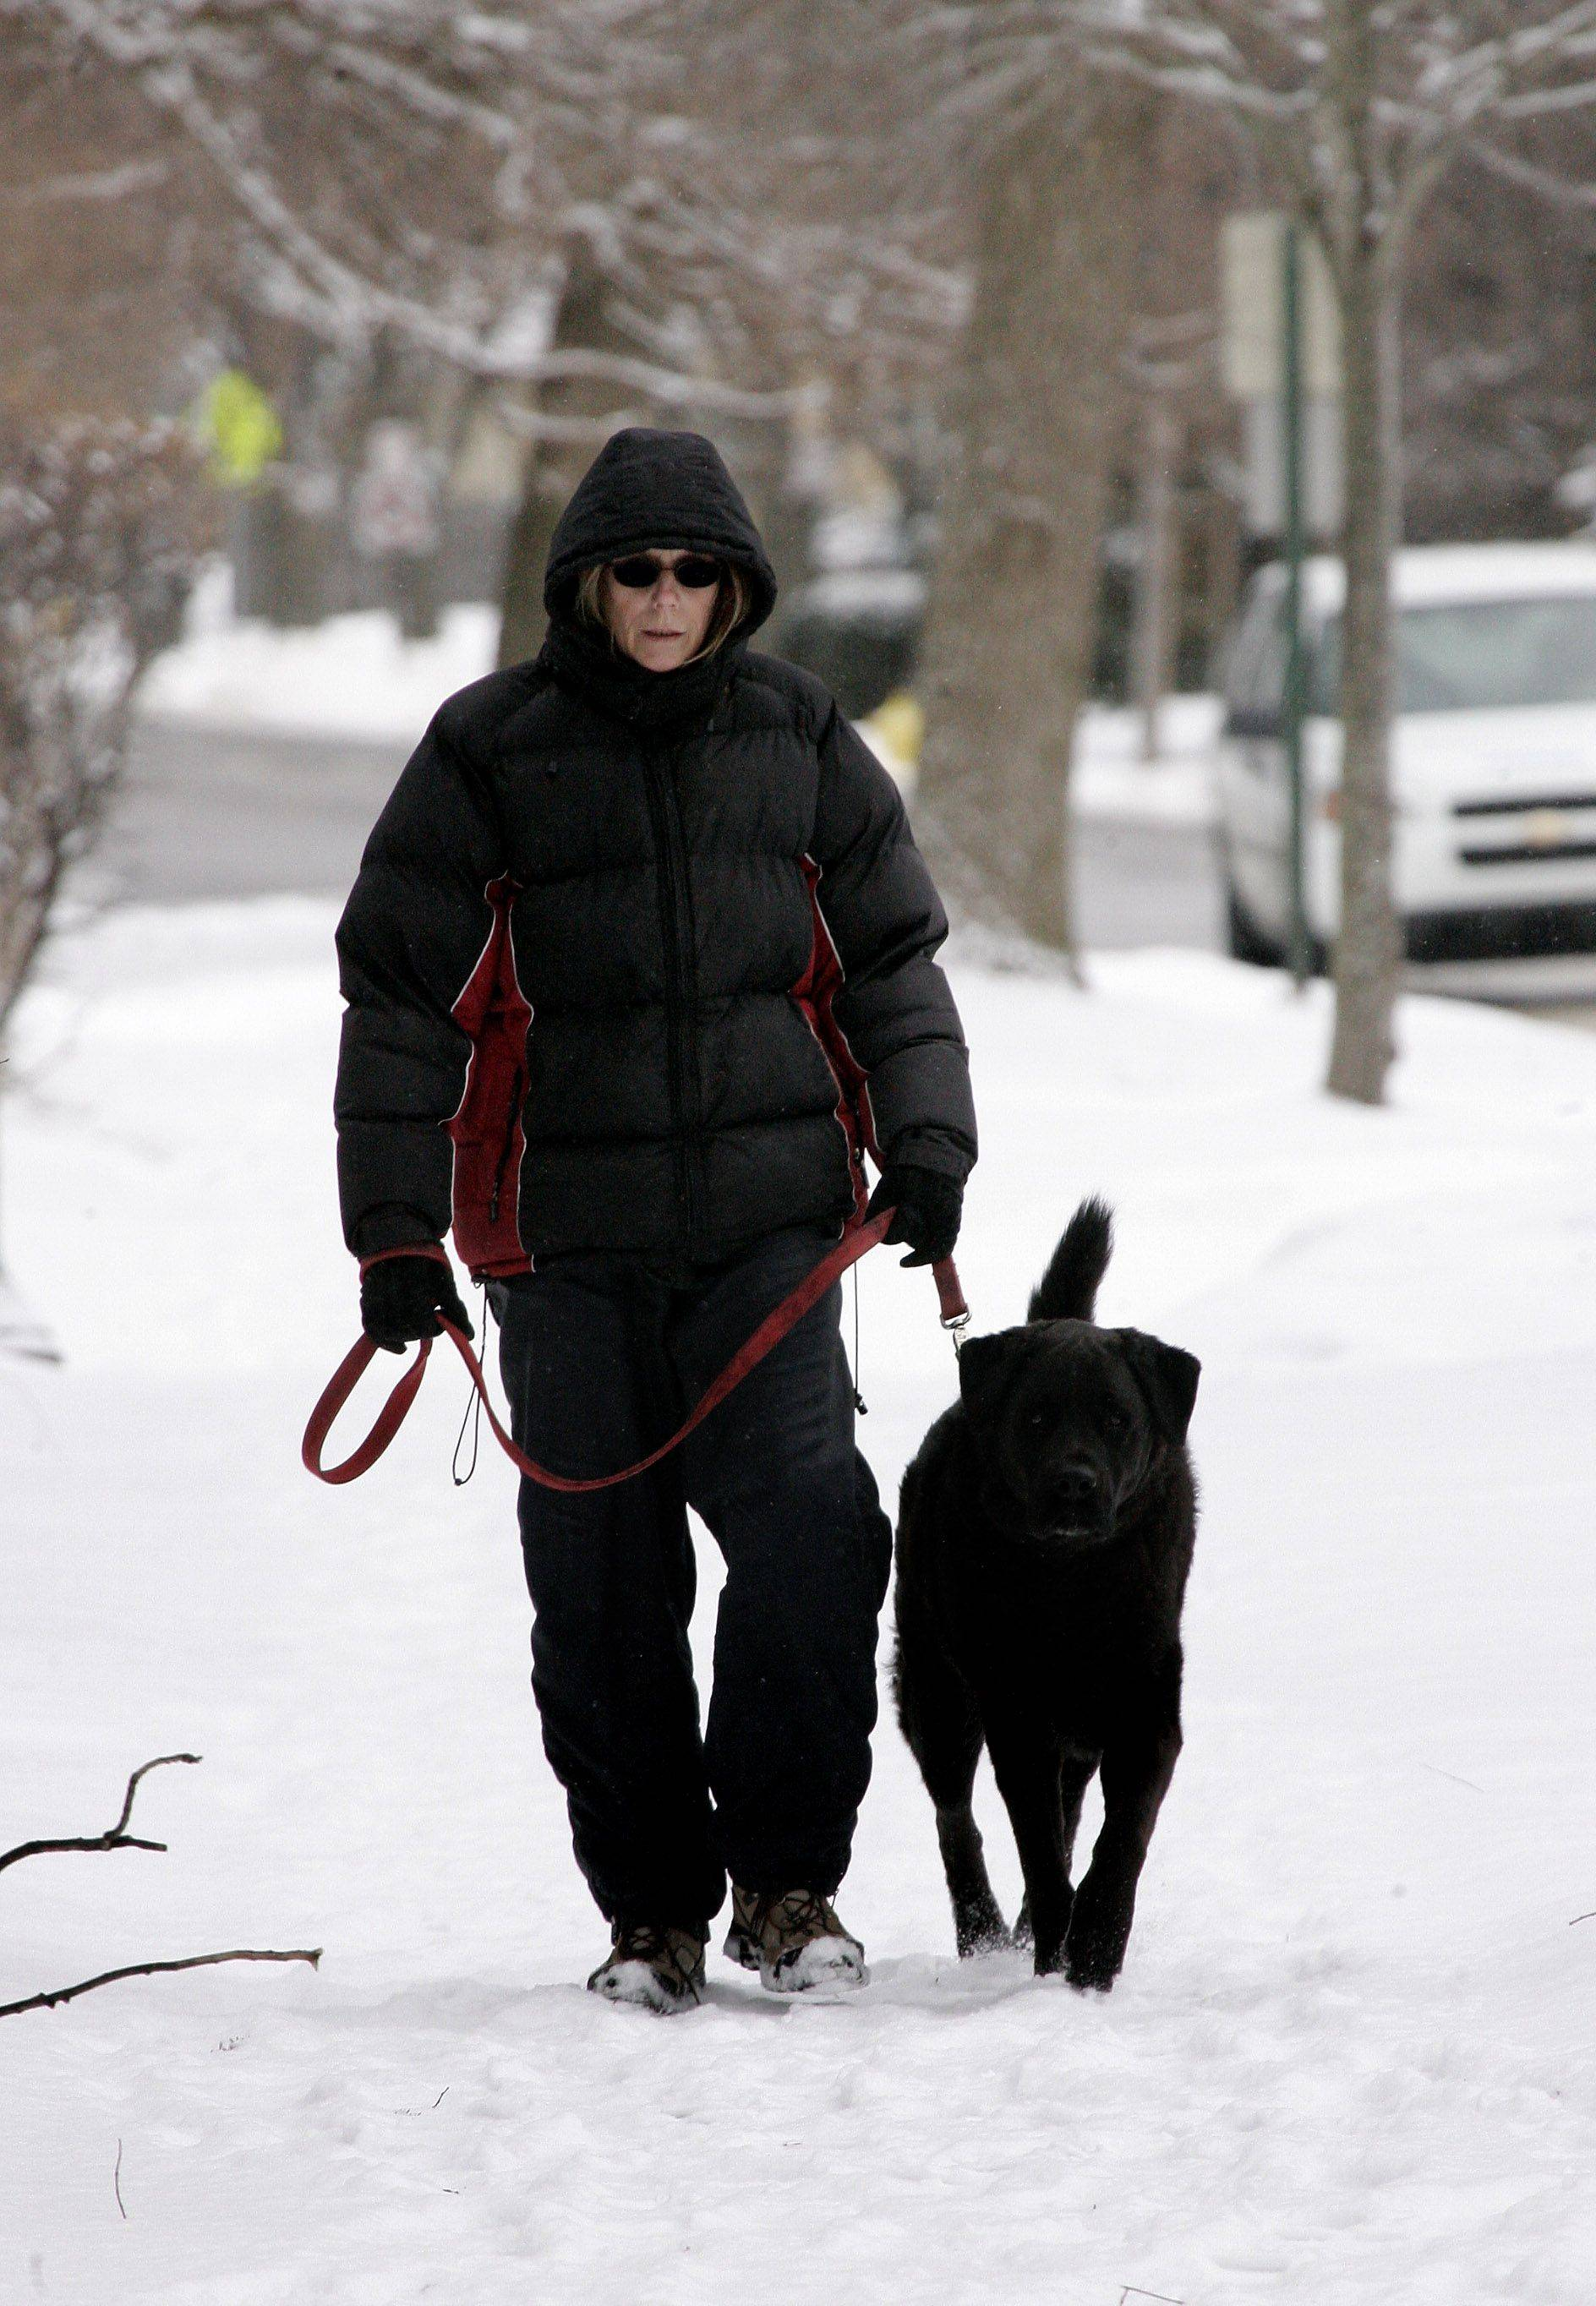 Carol Corter of Libertyville walks her dog, Izzo, along Rockland Road in Libertyville Tuesday after snow fell overnight around Lake County. The snow we received Tuesday and Wednesday haven't been enough to set a record, but we may tonight.